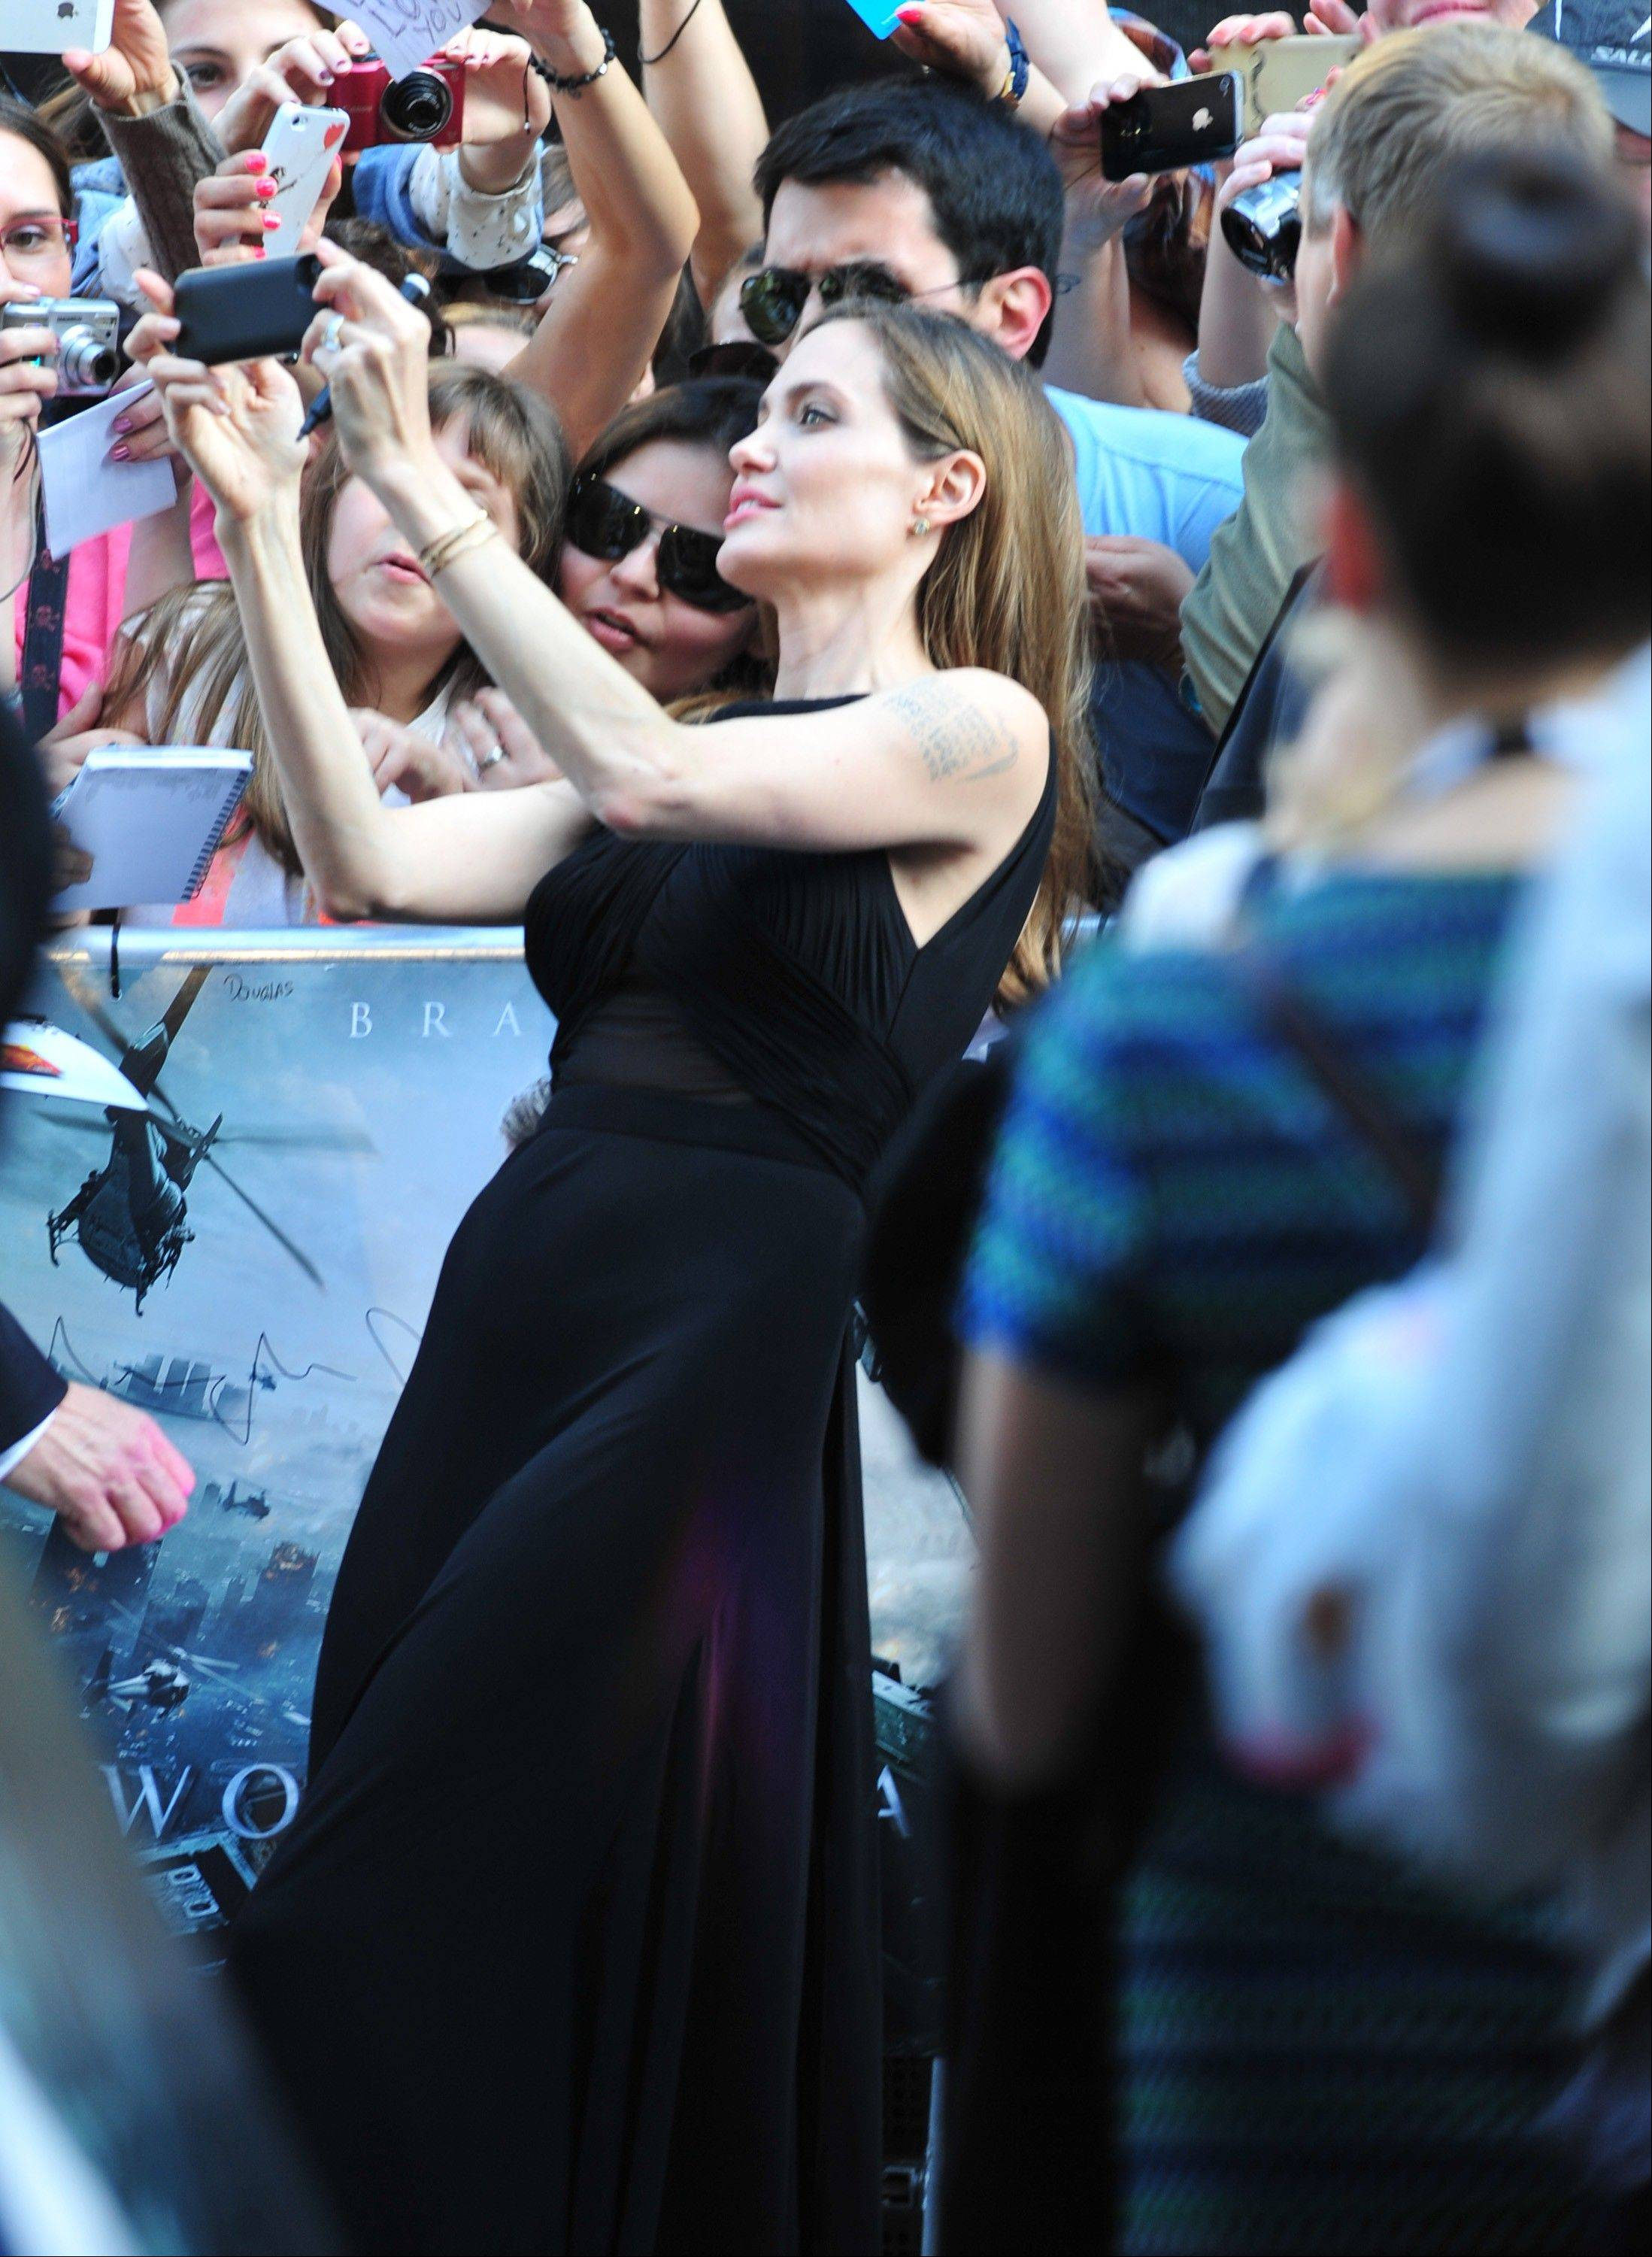 Angelina Jolie greets fans at the World Premiere of 'World War Z' at the Empire Cinema in London on Sunday June 2, 2013.